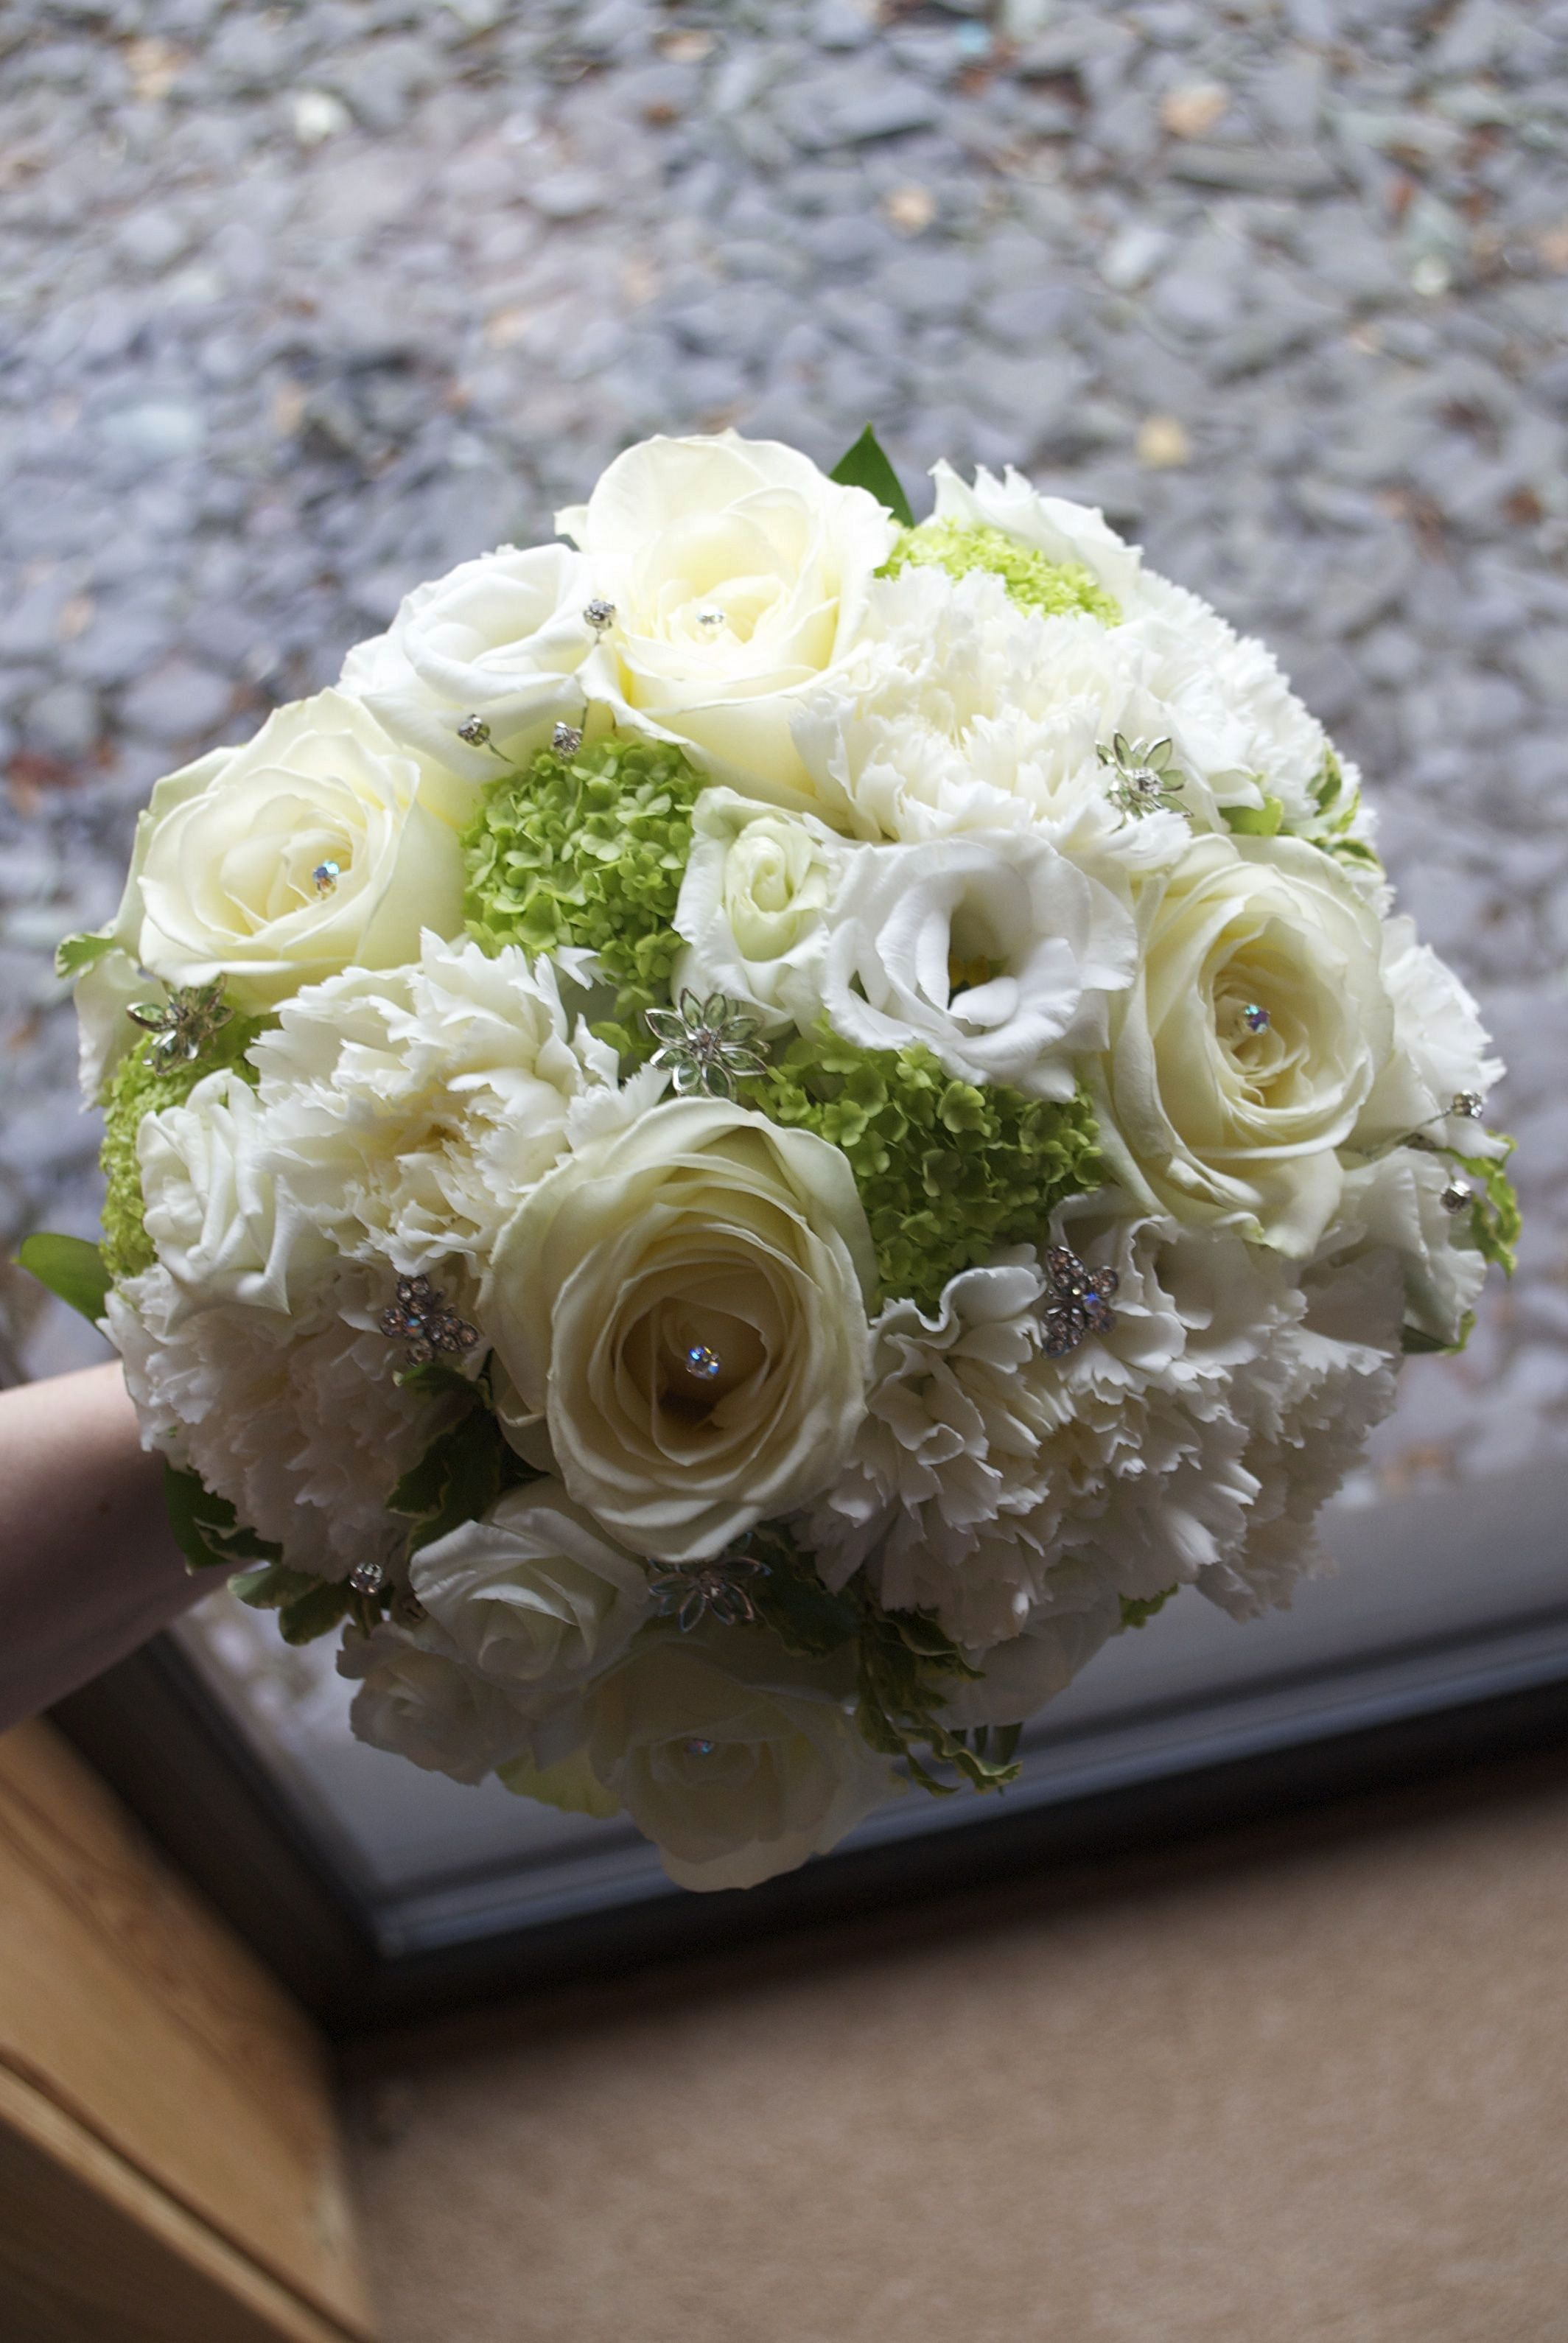 50 most beautiful white and green wedding bouquet flower csokor ideas and inspiration for styal lodge wedding flowers from the open evenings in january arrangements including table centrepieces bouquets ceremony decor izmirmasajfo